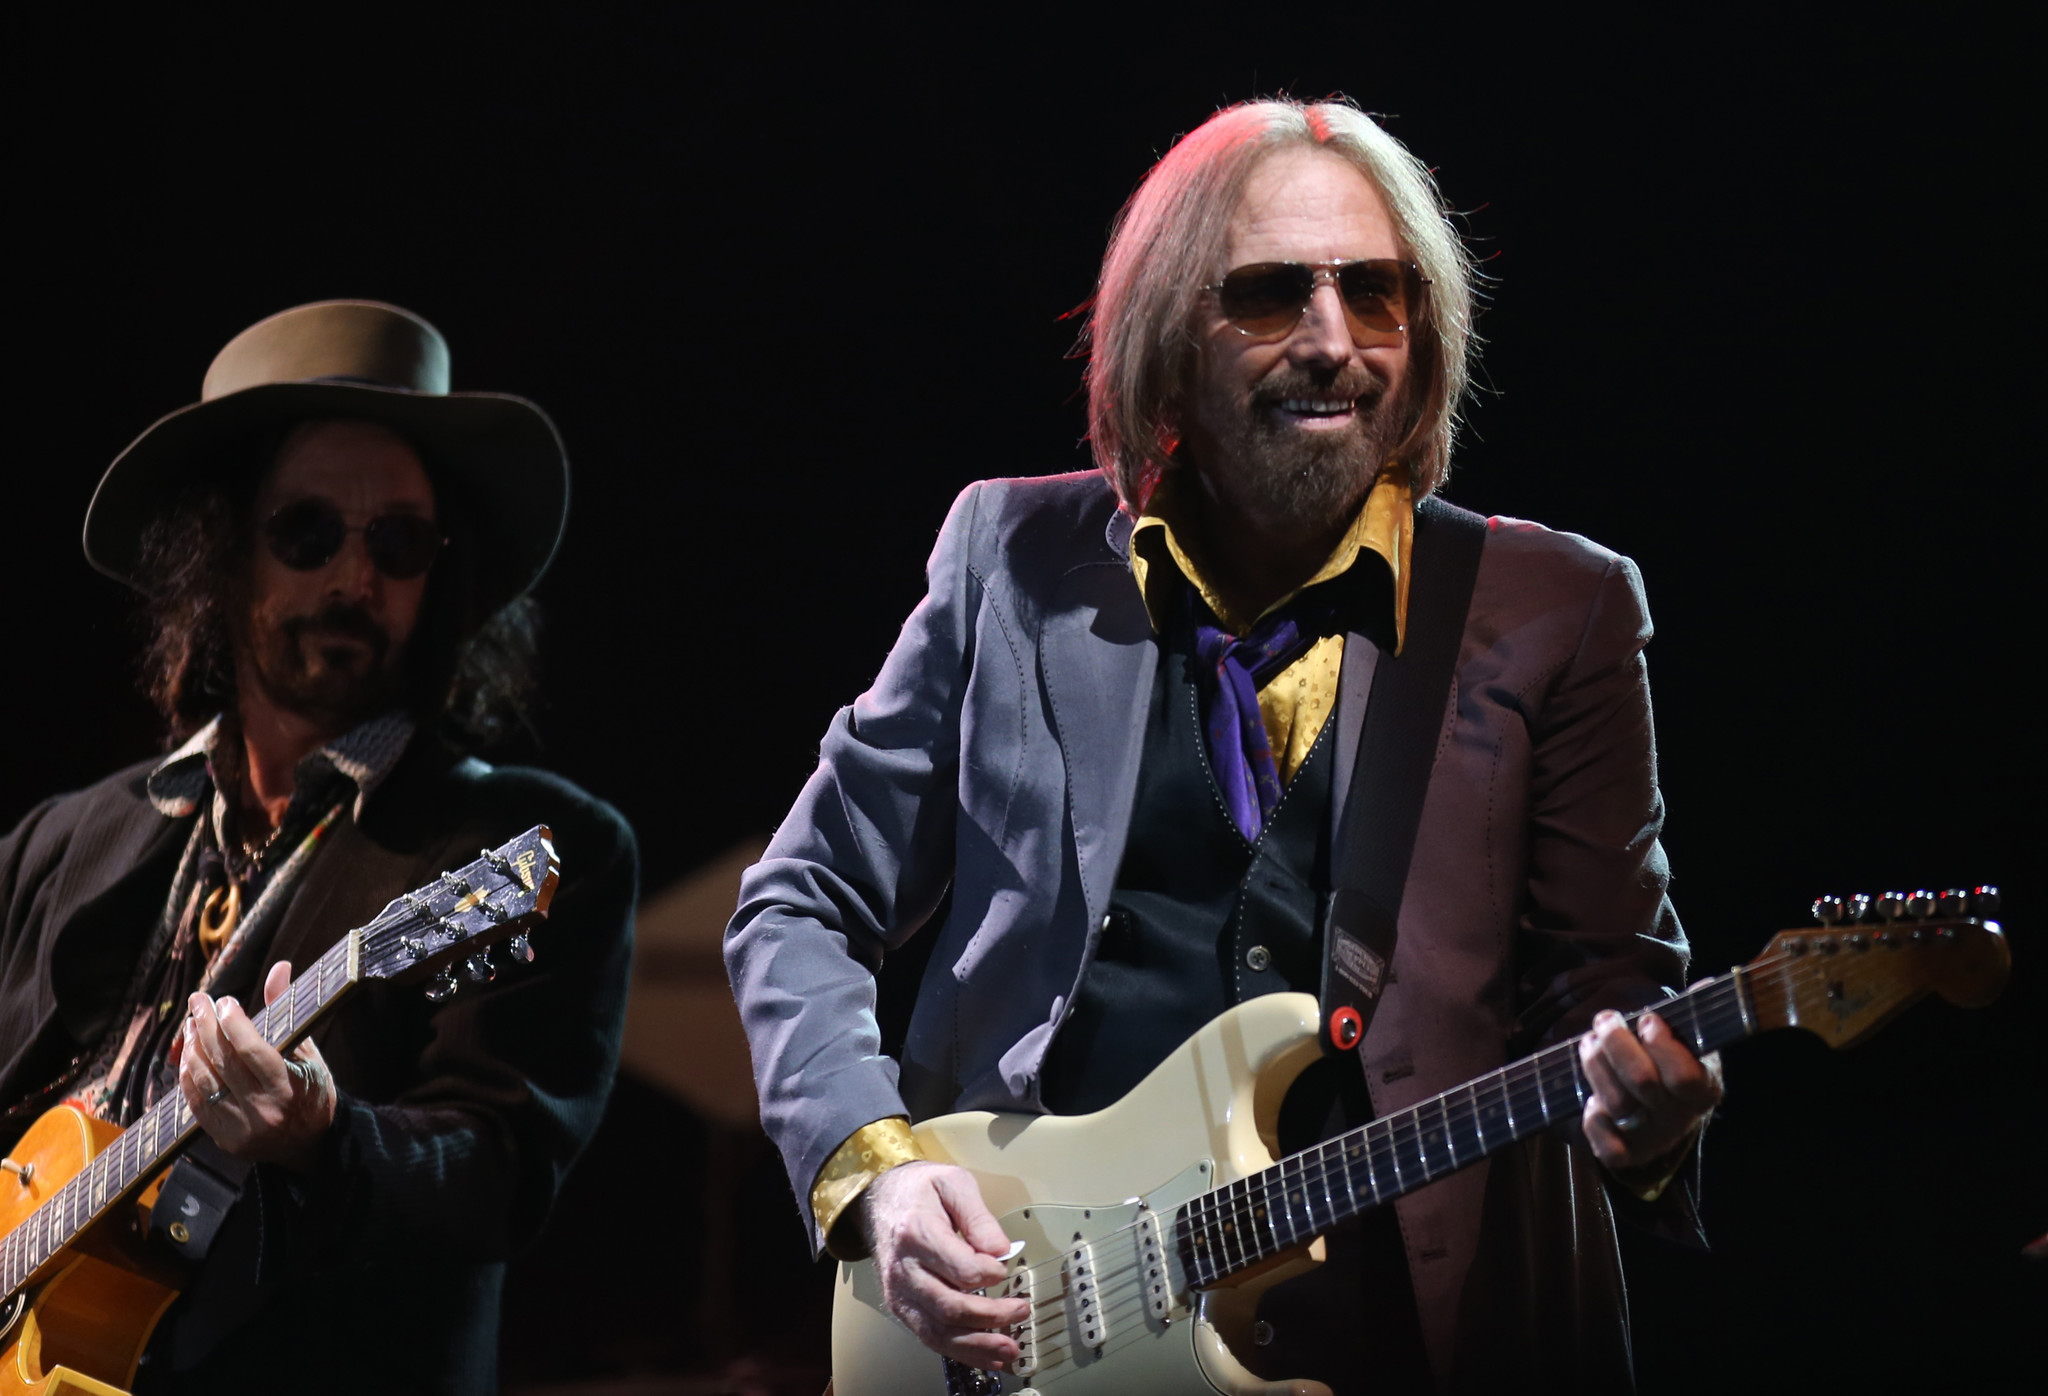 Tom Petty & the Heartbreakers perform.